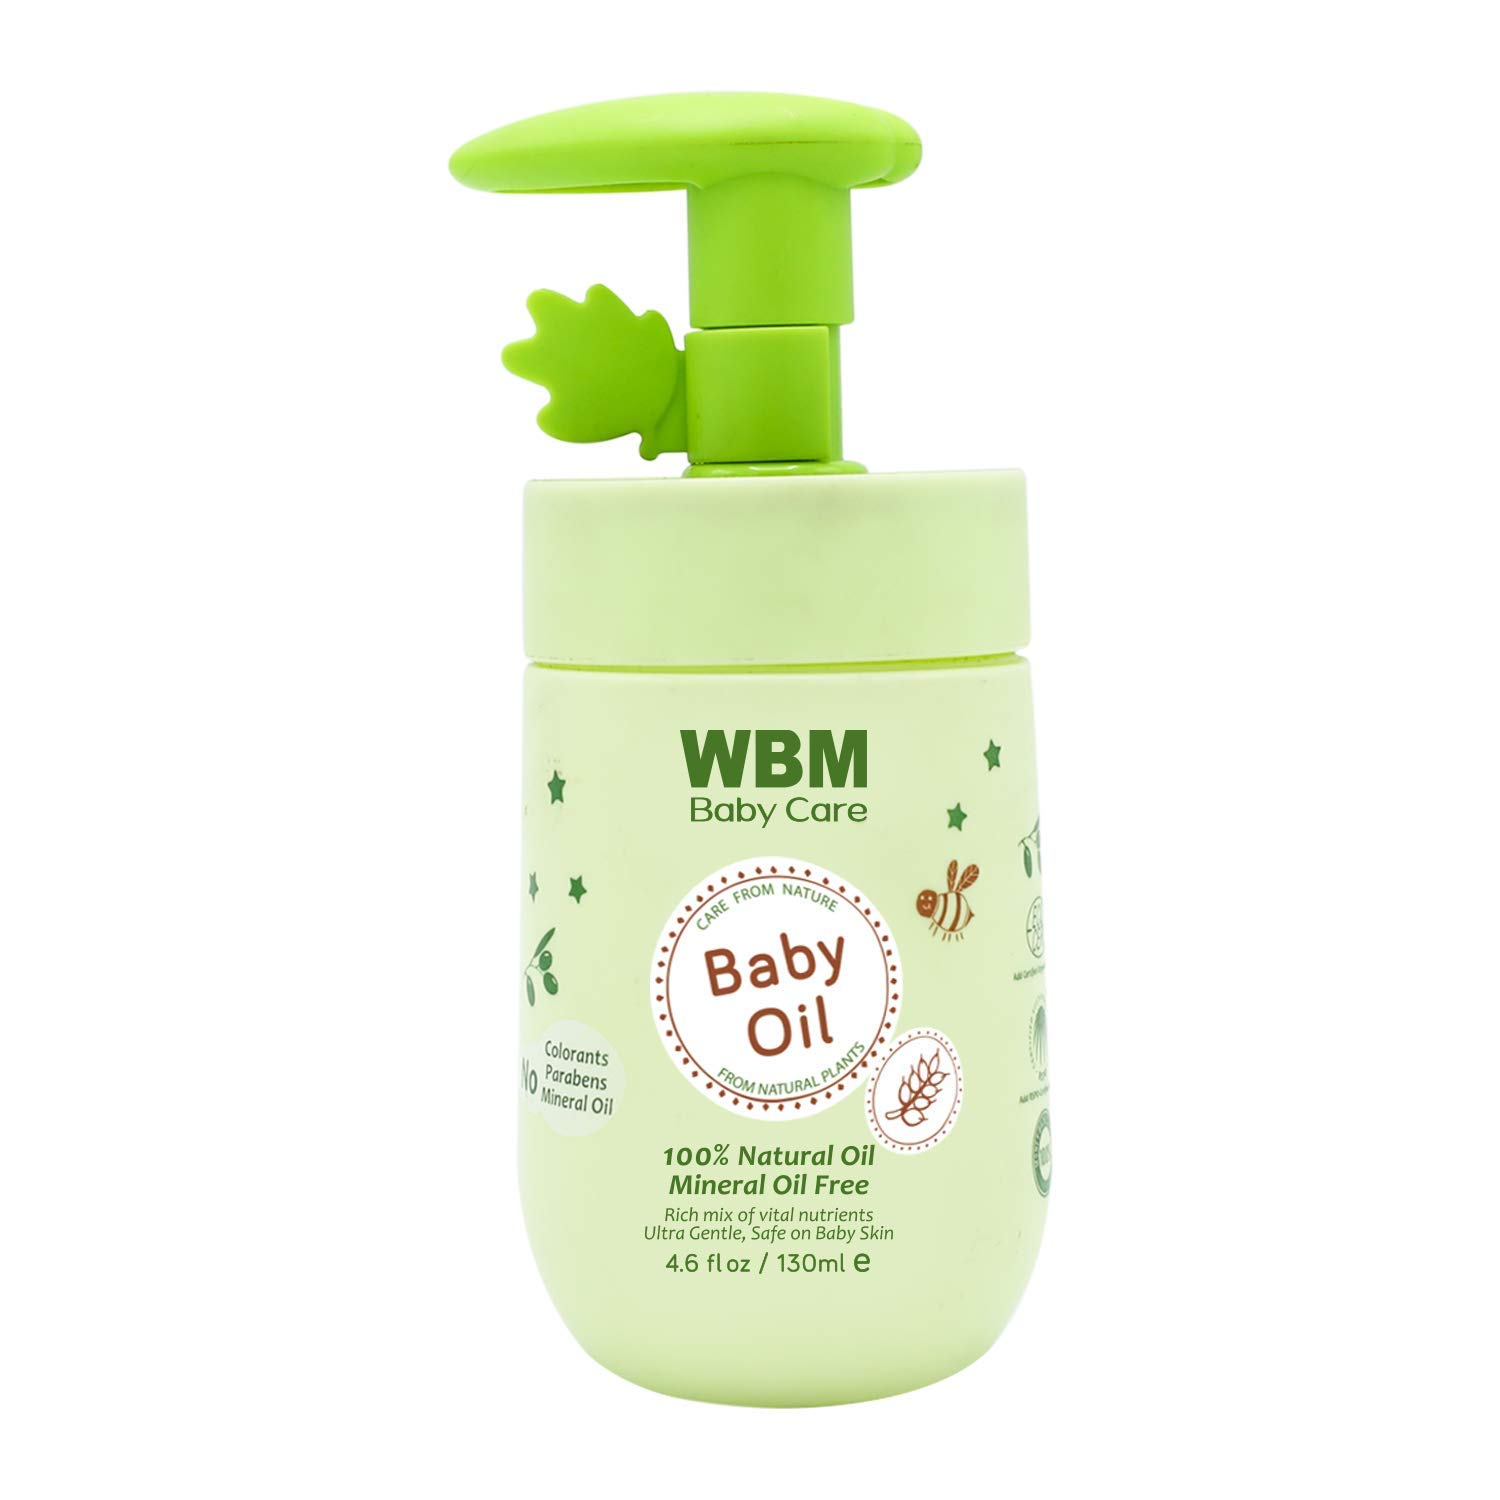 WBM Care Baby Oil,Moisturizing Baby Massage Oil,Mineral Oil Free With 100% Natural Ingredients And Vitamin E - 4.6 Oz